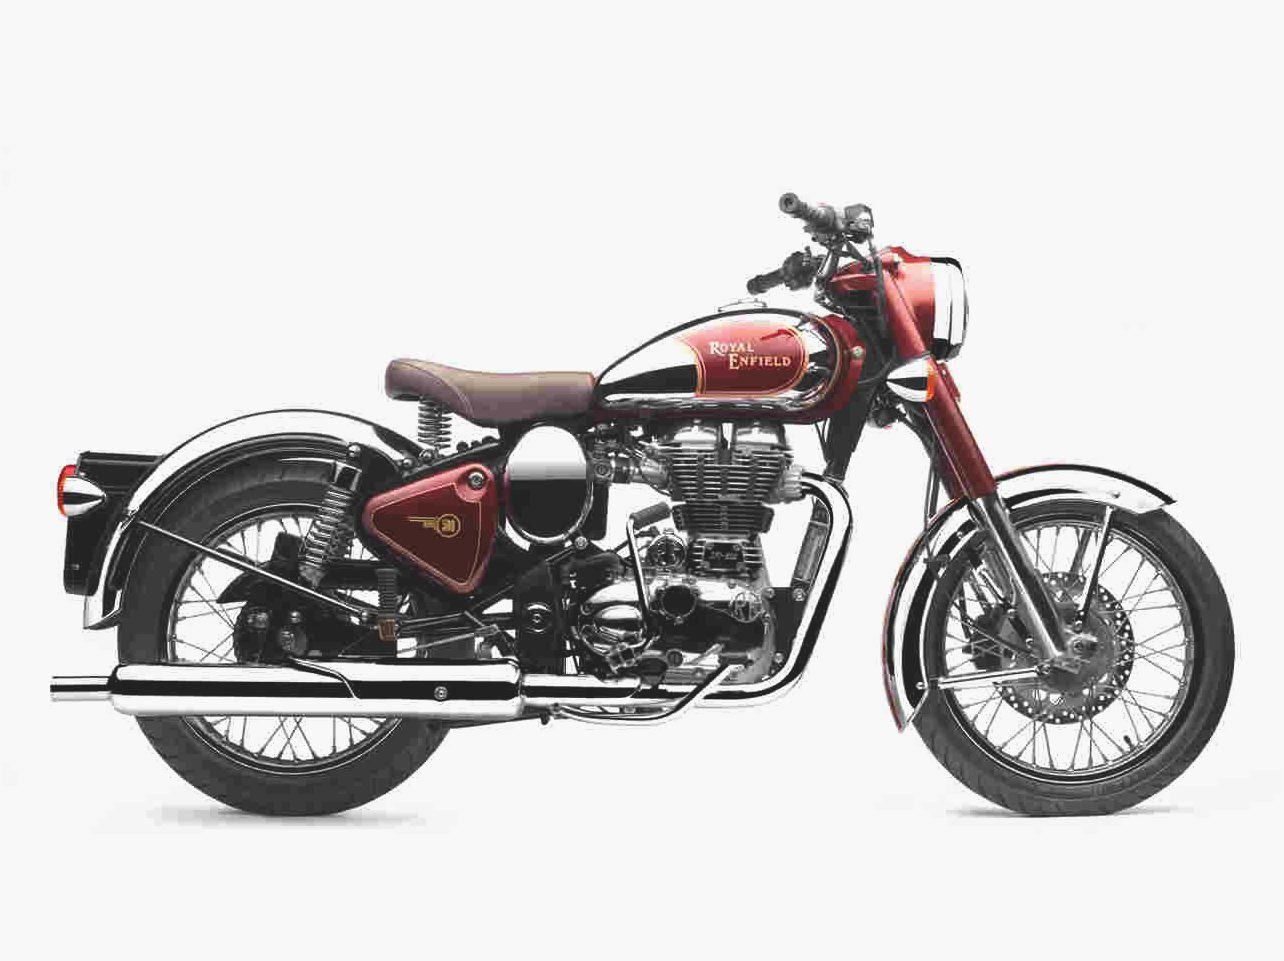 Royal Enfield Bullet 350 Classic 2005 images #123545